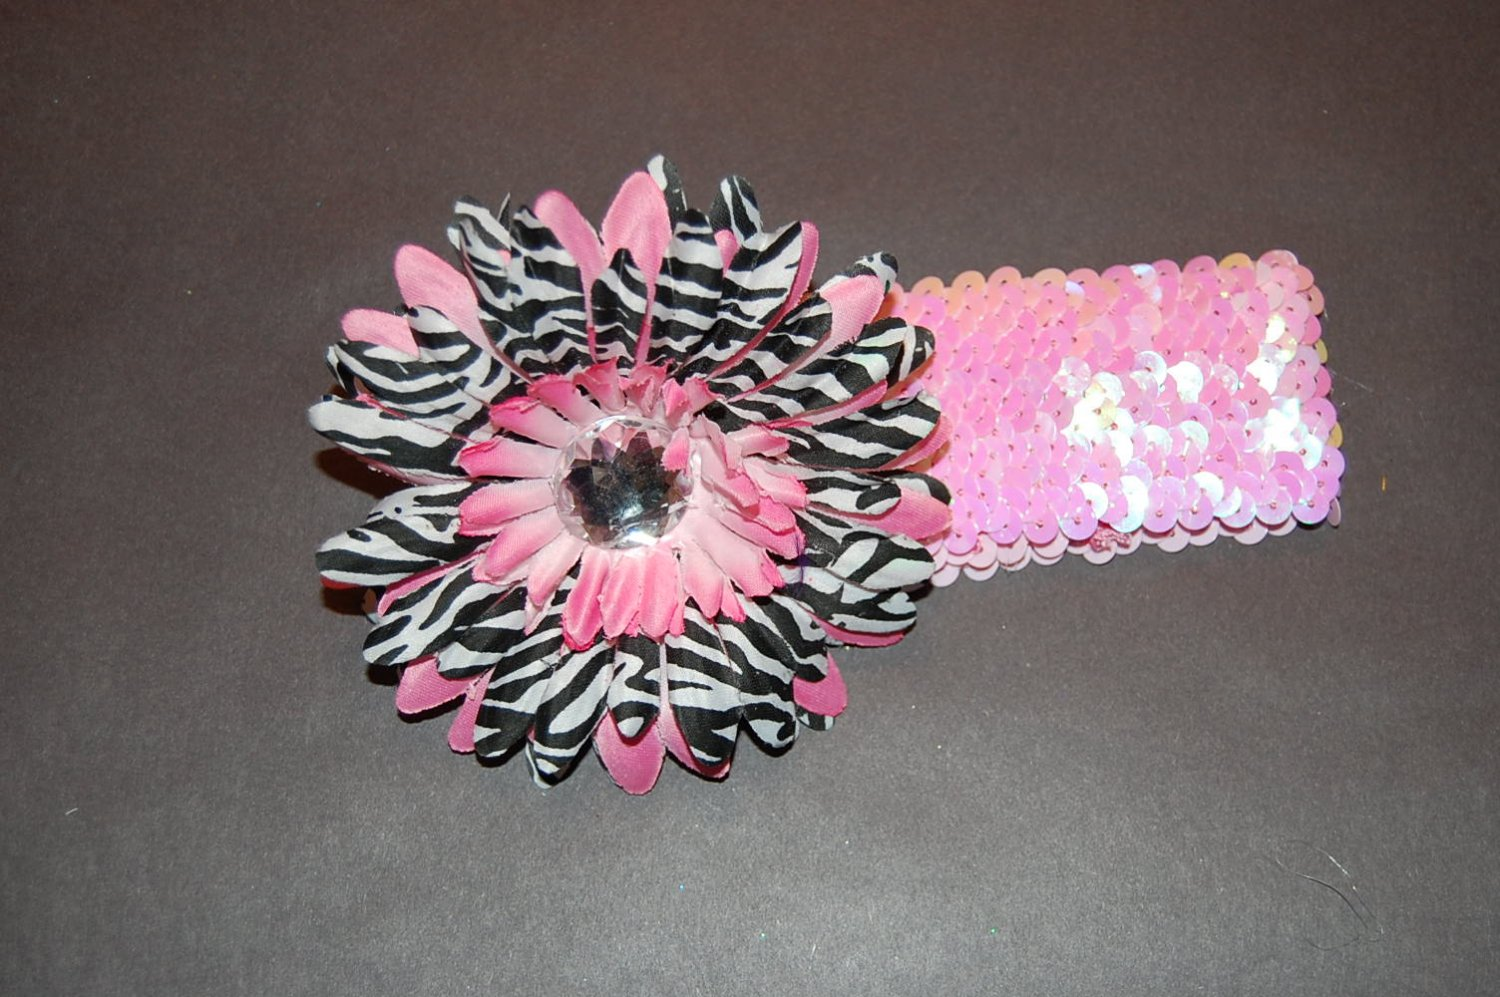 "4"" Layered Zebra Daisy, 2"" Sequined Headband, Black/White/Pink"